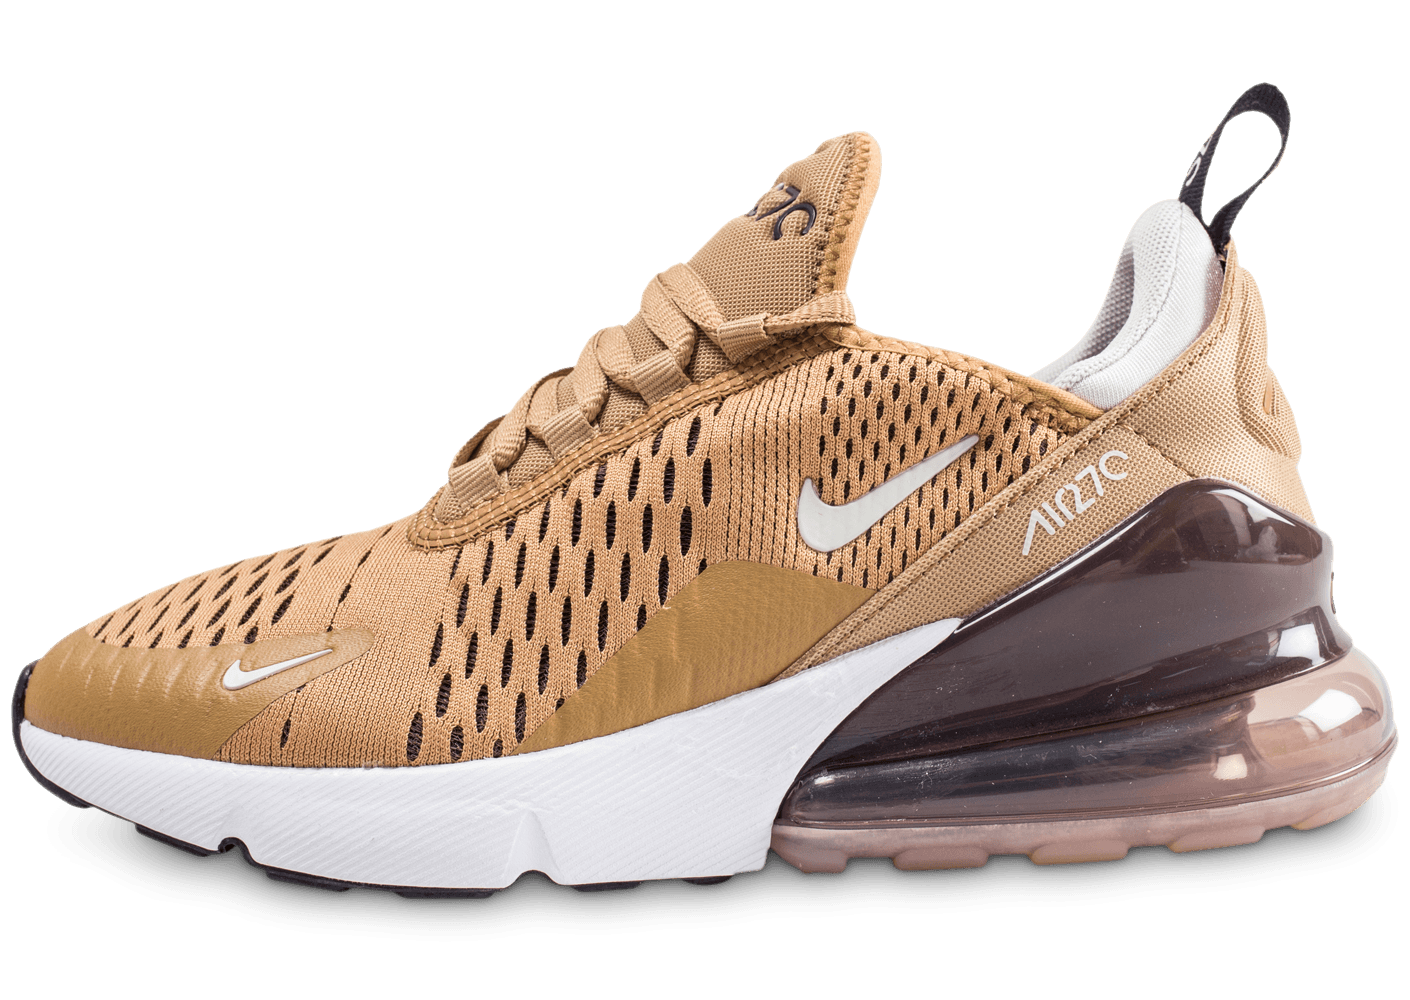 Nike Air Max 270 Elemental Gold junior - Chaussures Baskets femme - Chausport